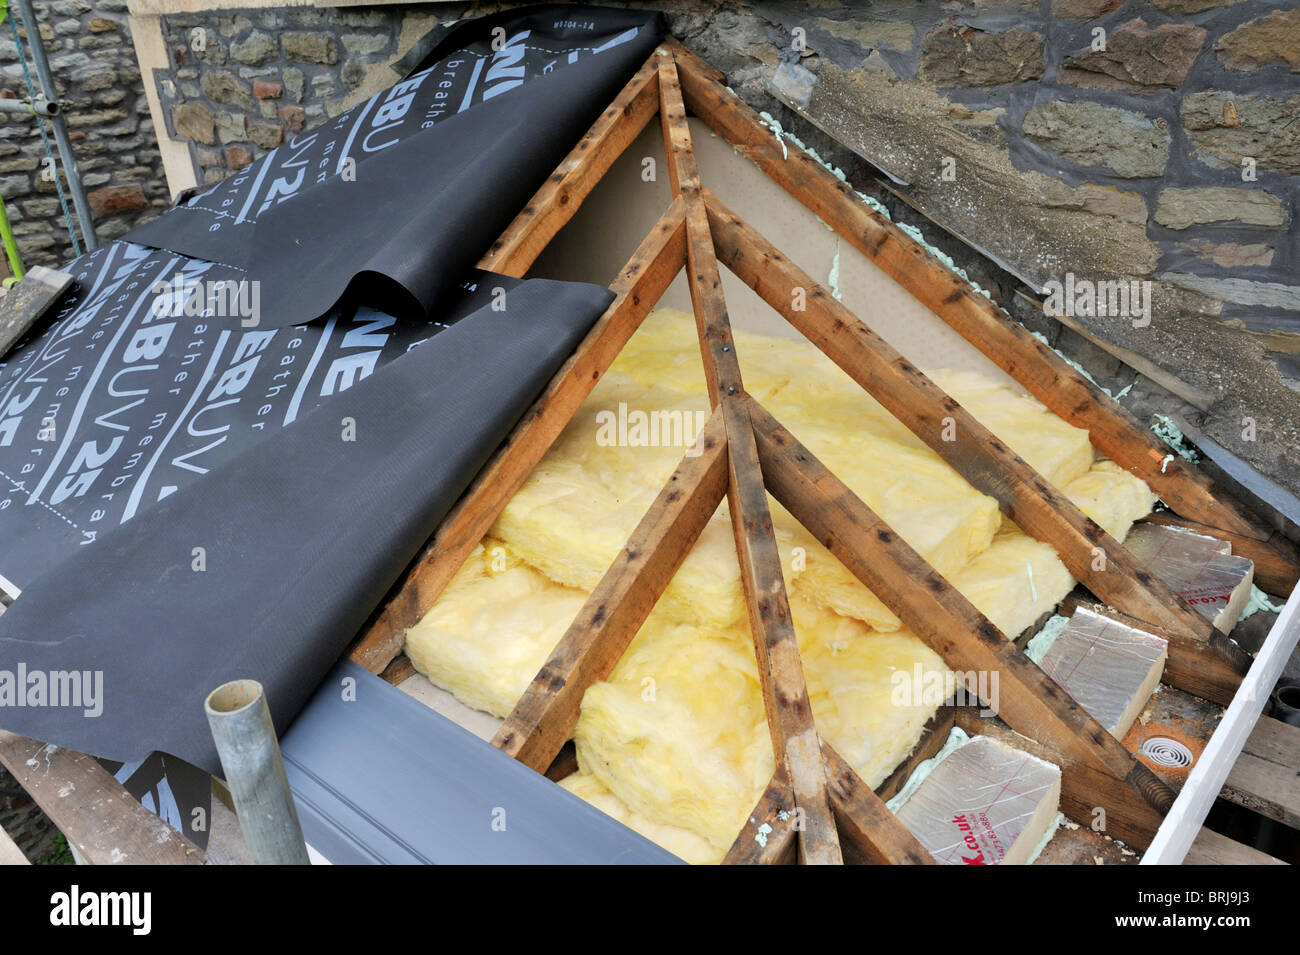 Bay Window Timber Quot Hip Roof Quot Trusses And Fibreglass